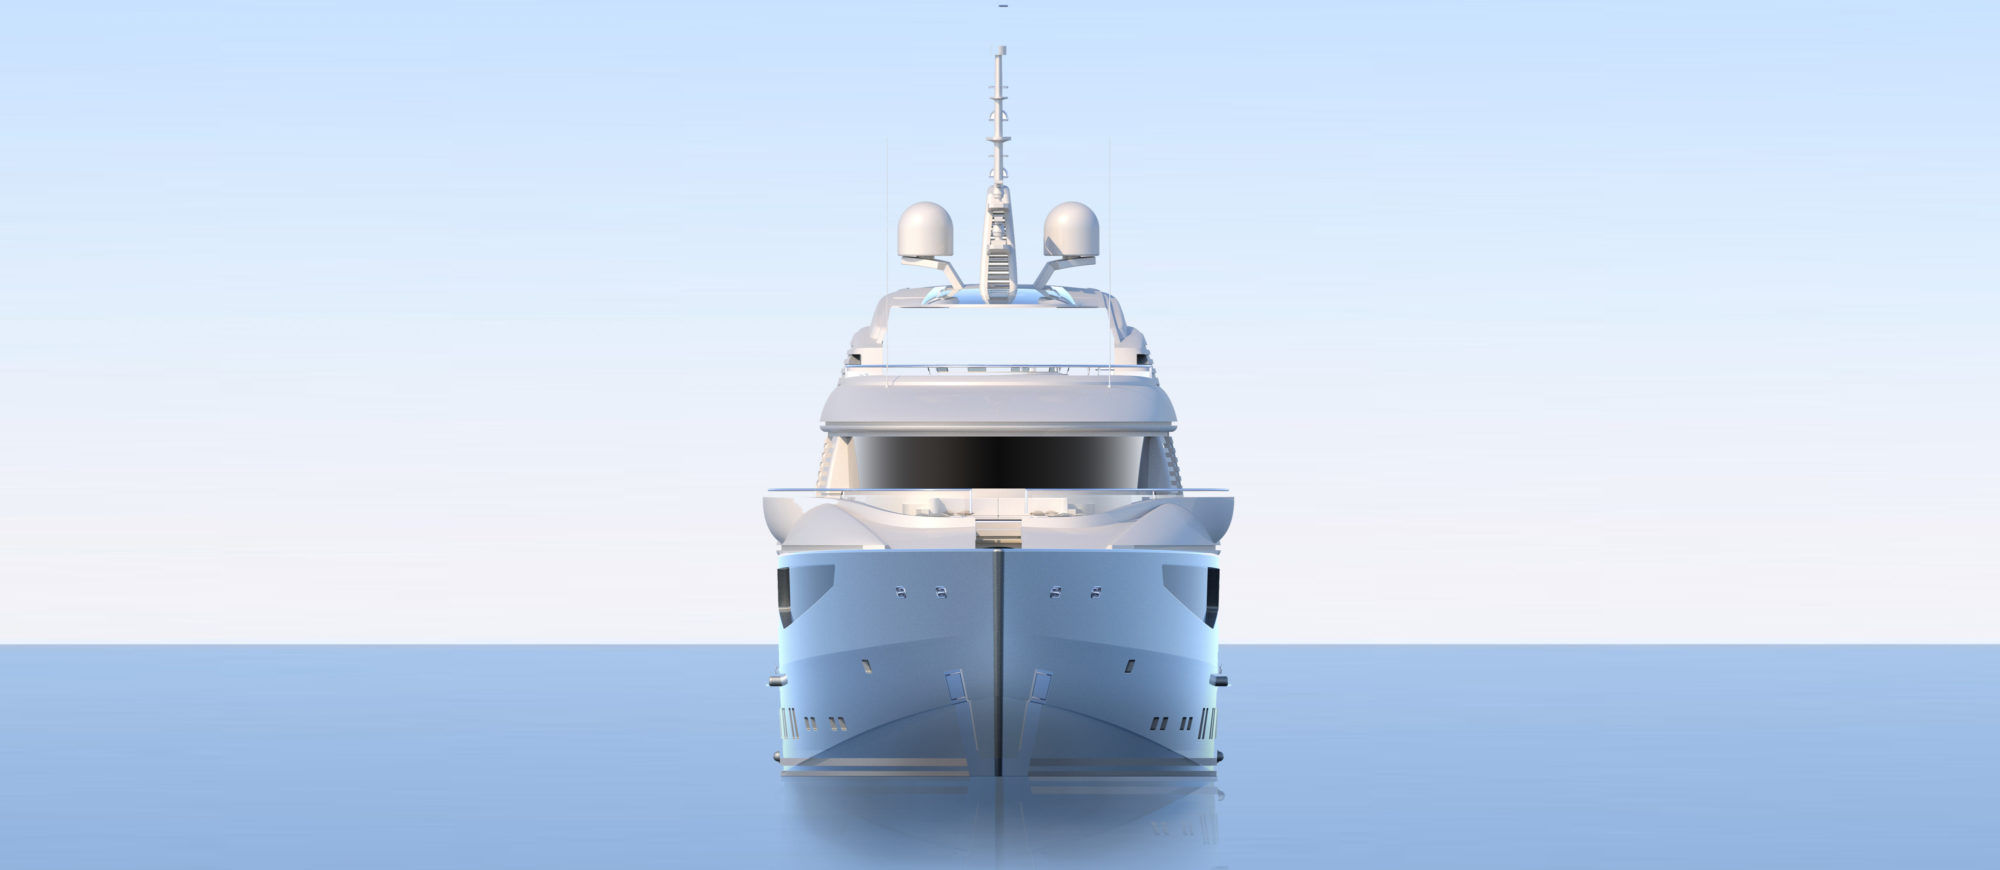 Conrad C166 Superyacht Concept Vallicelli Visualisation Front Profile